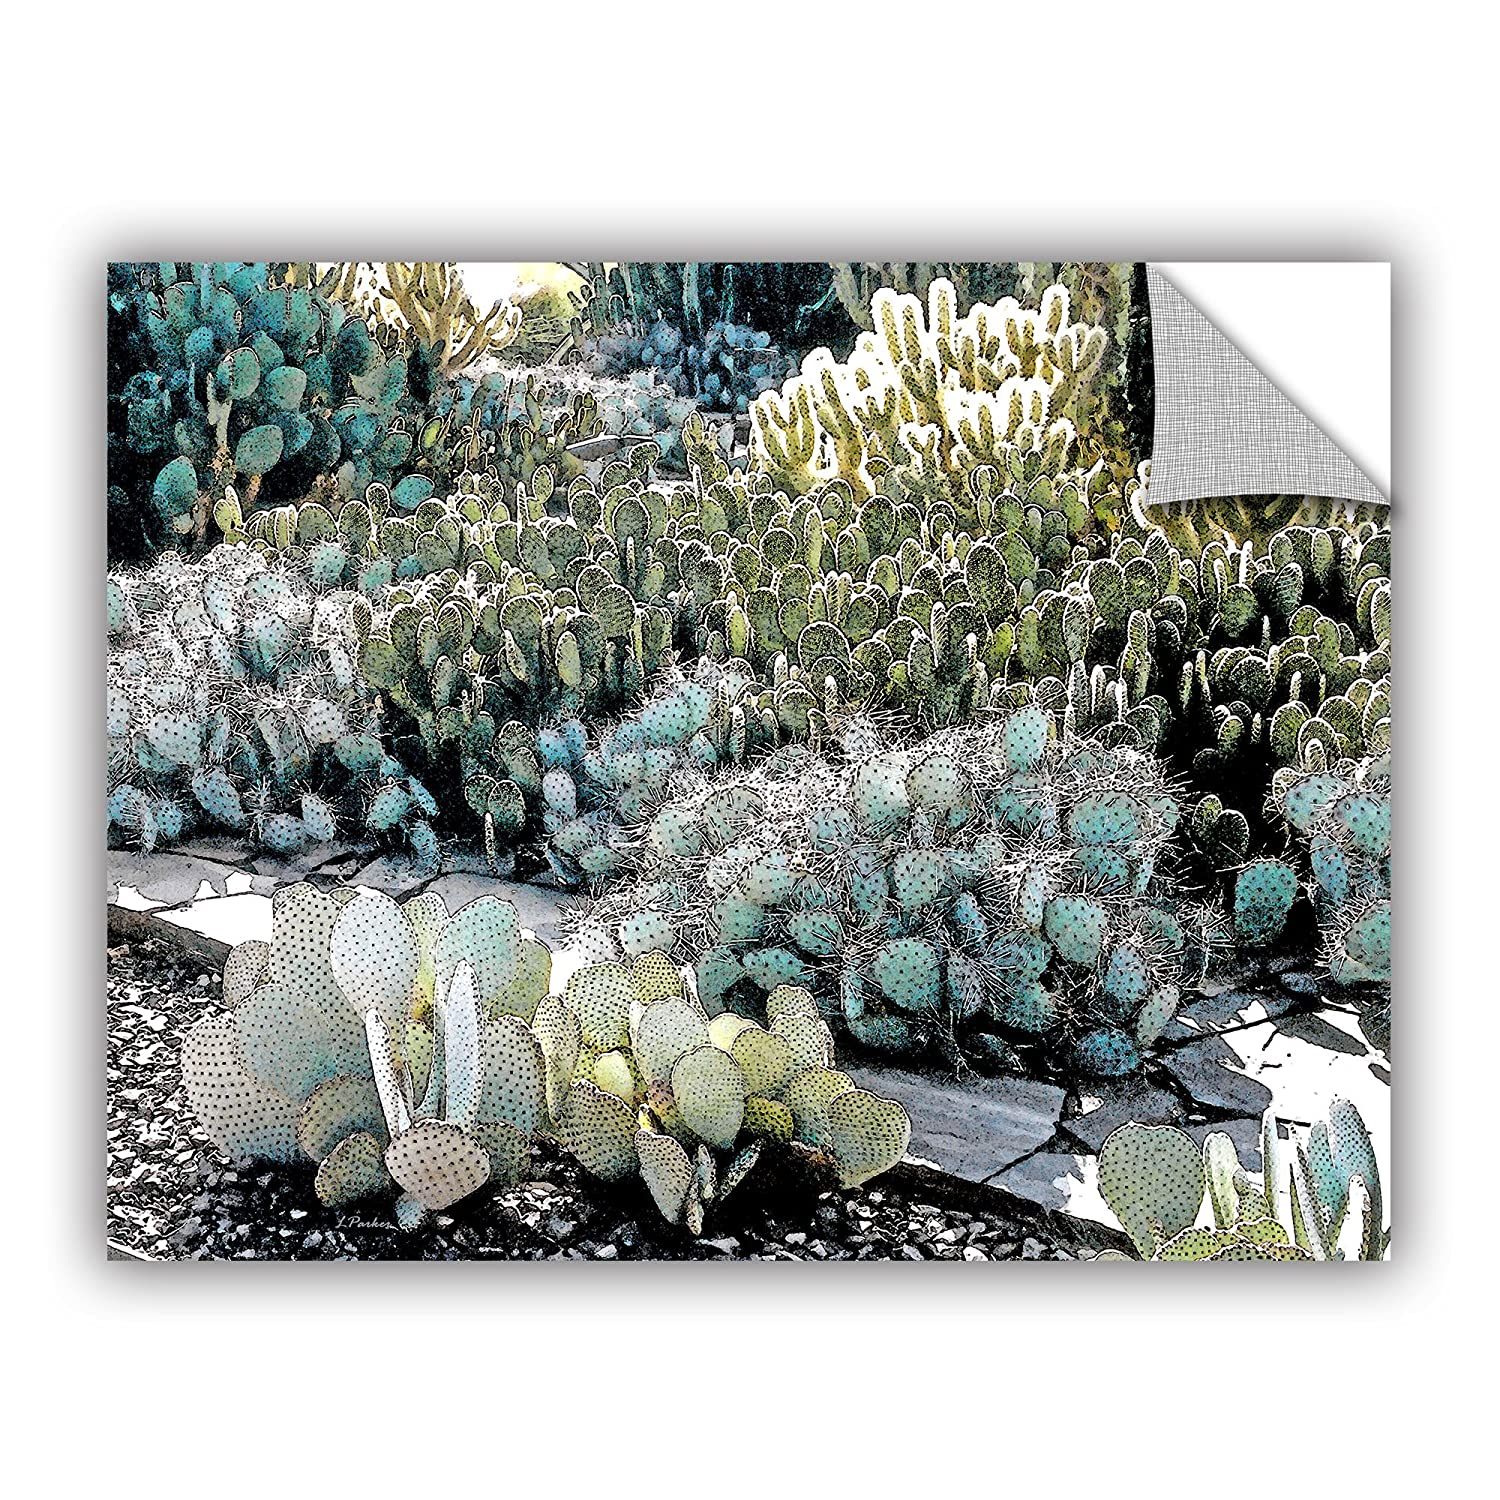 24 by 32 ArtWall Linda Parkers Botanical Garden Appeelz Removable Graphic Wall Art